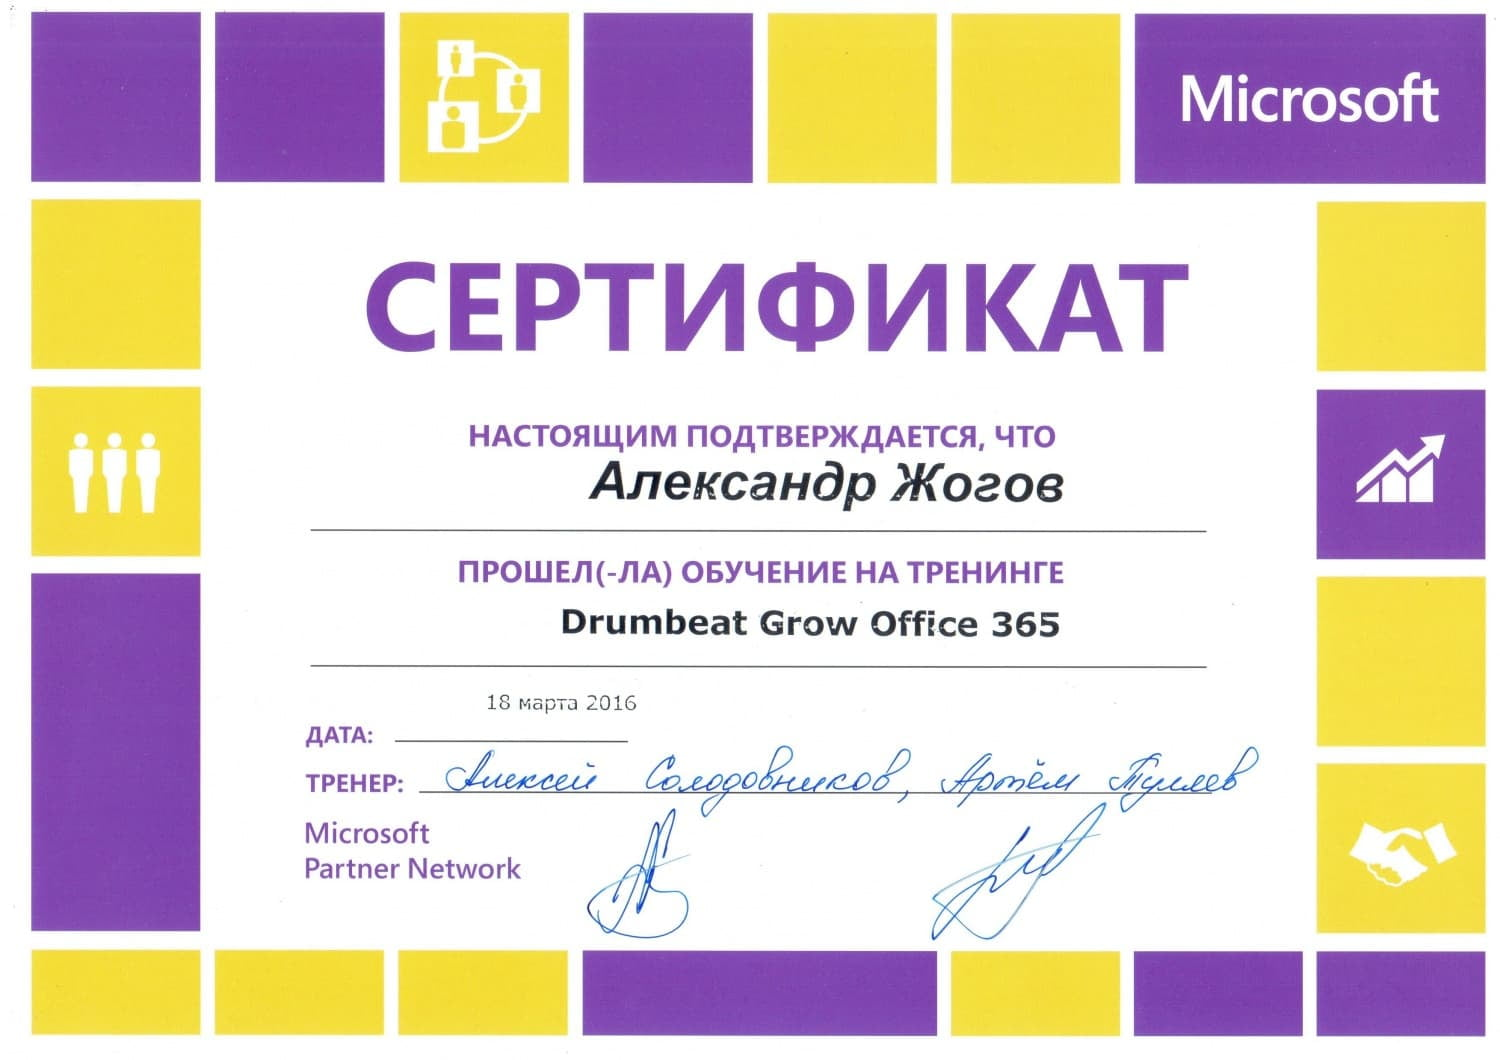 Microsoft Drumbeat Grow Office 365